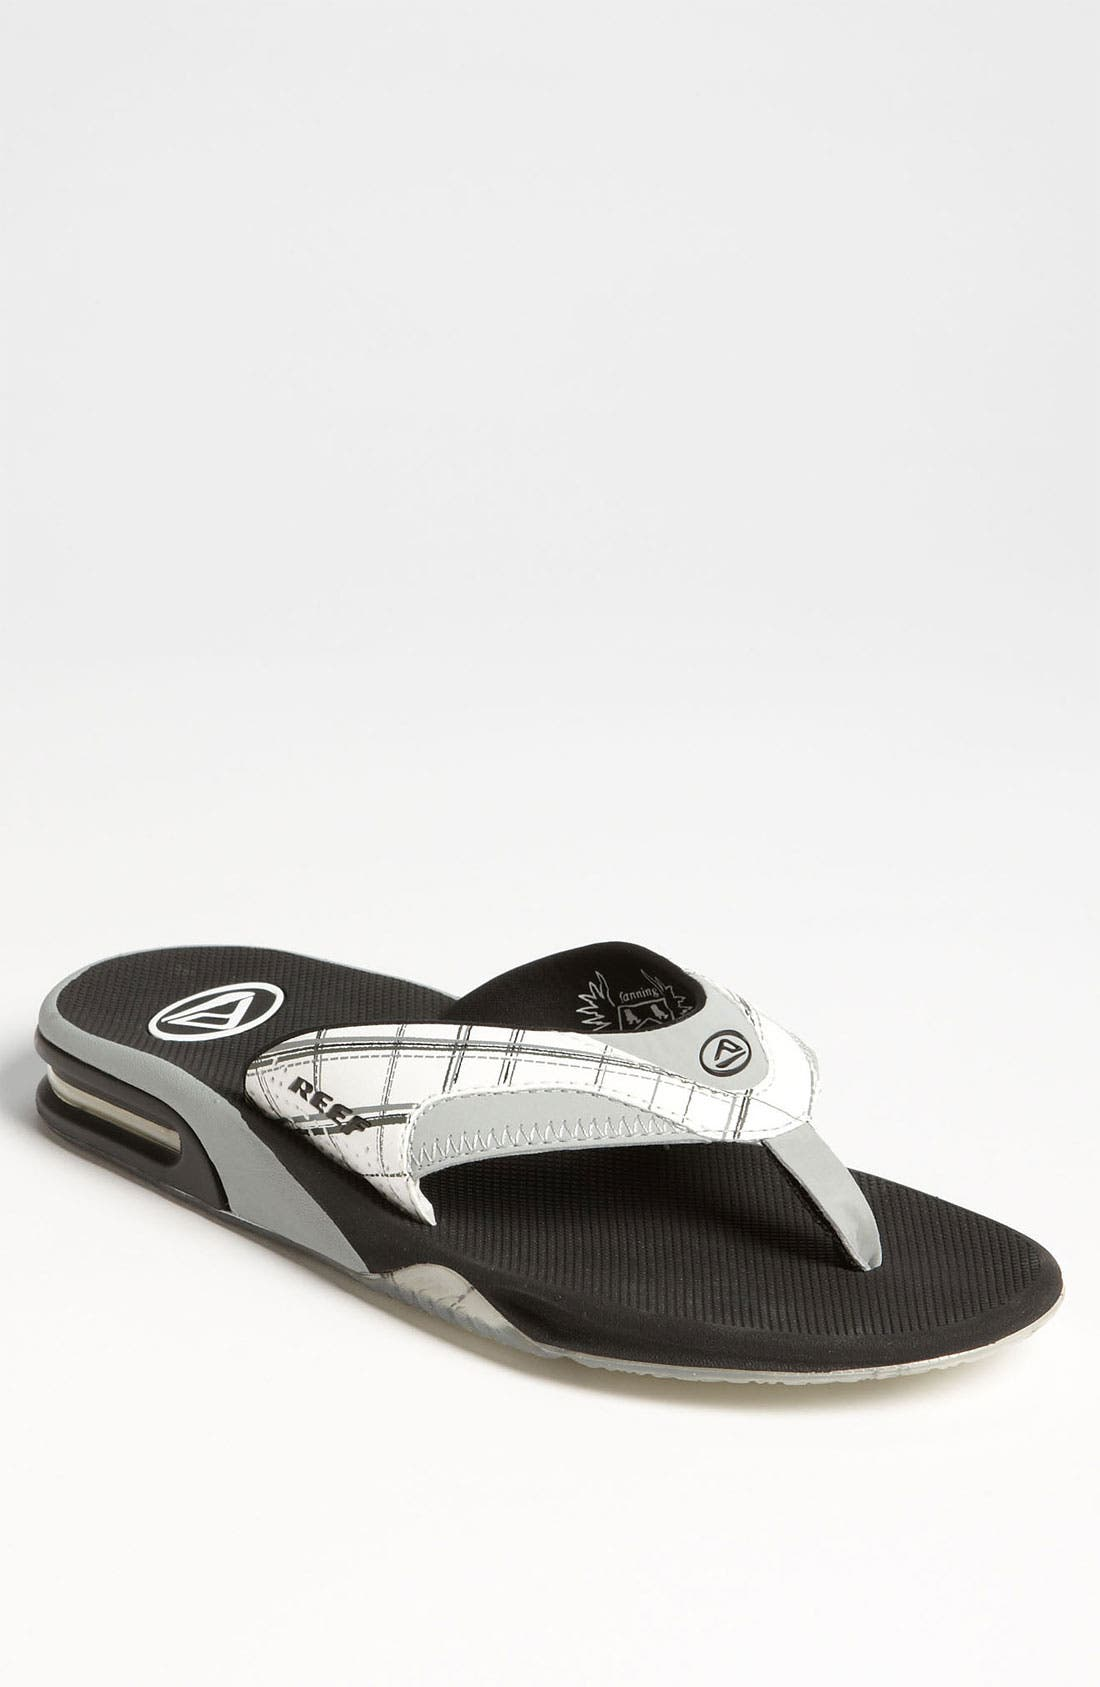 Main Image - Reef 'Fanning Plaid' Flip Flop